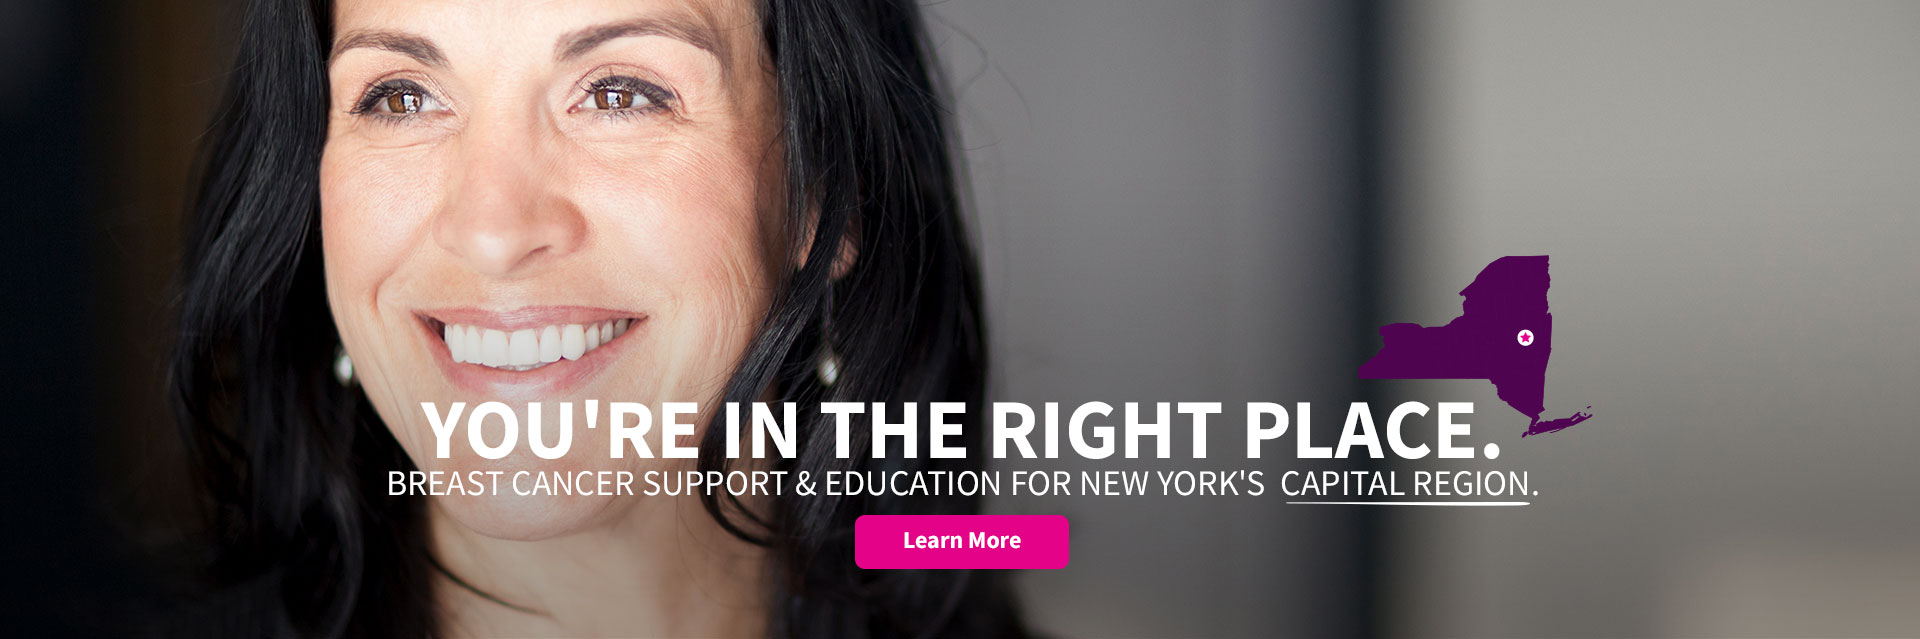 Woman smiling in support of breast cancer education